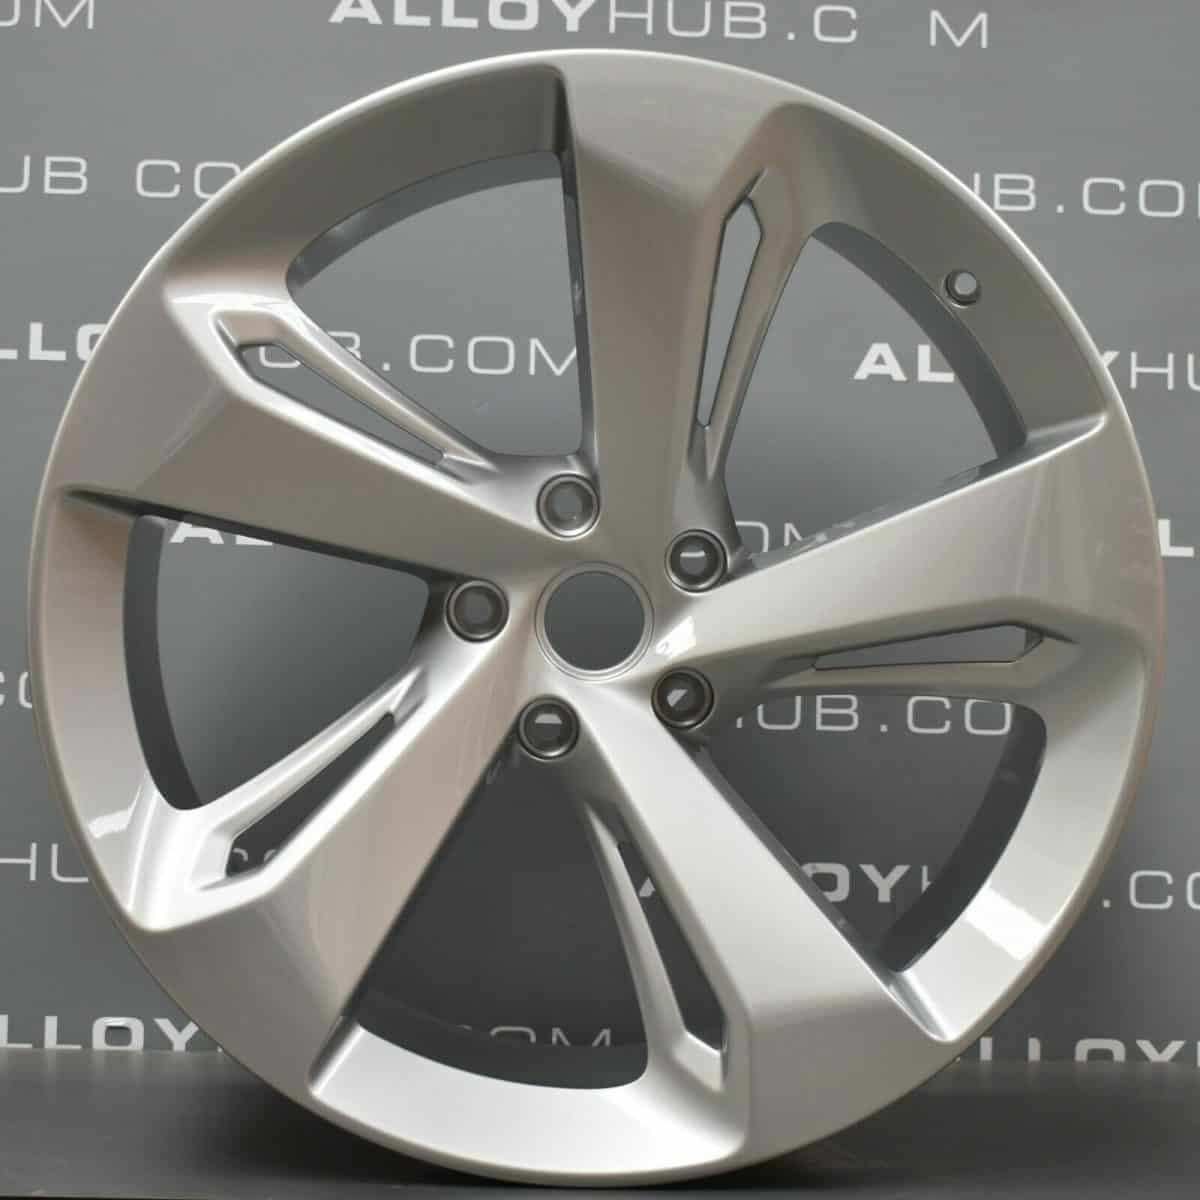 """Genuine Bentley Bentayga 5 Spoke 22"""" Inch Alloy Wheels with Silver Finish 3A601025D, 36A601025G"""